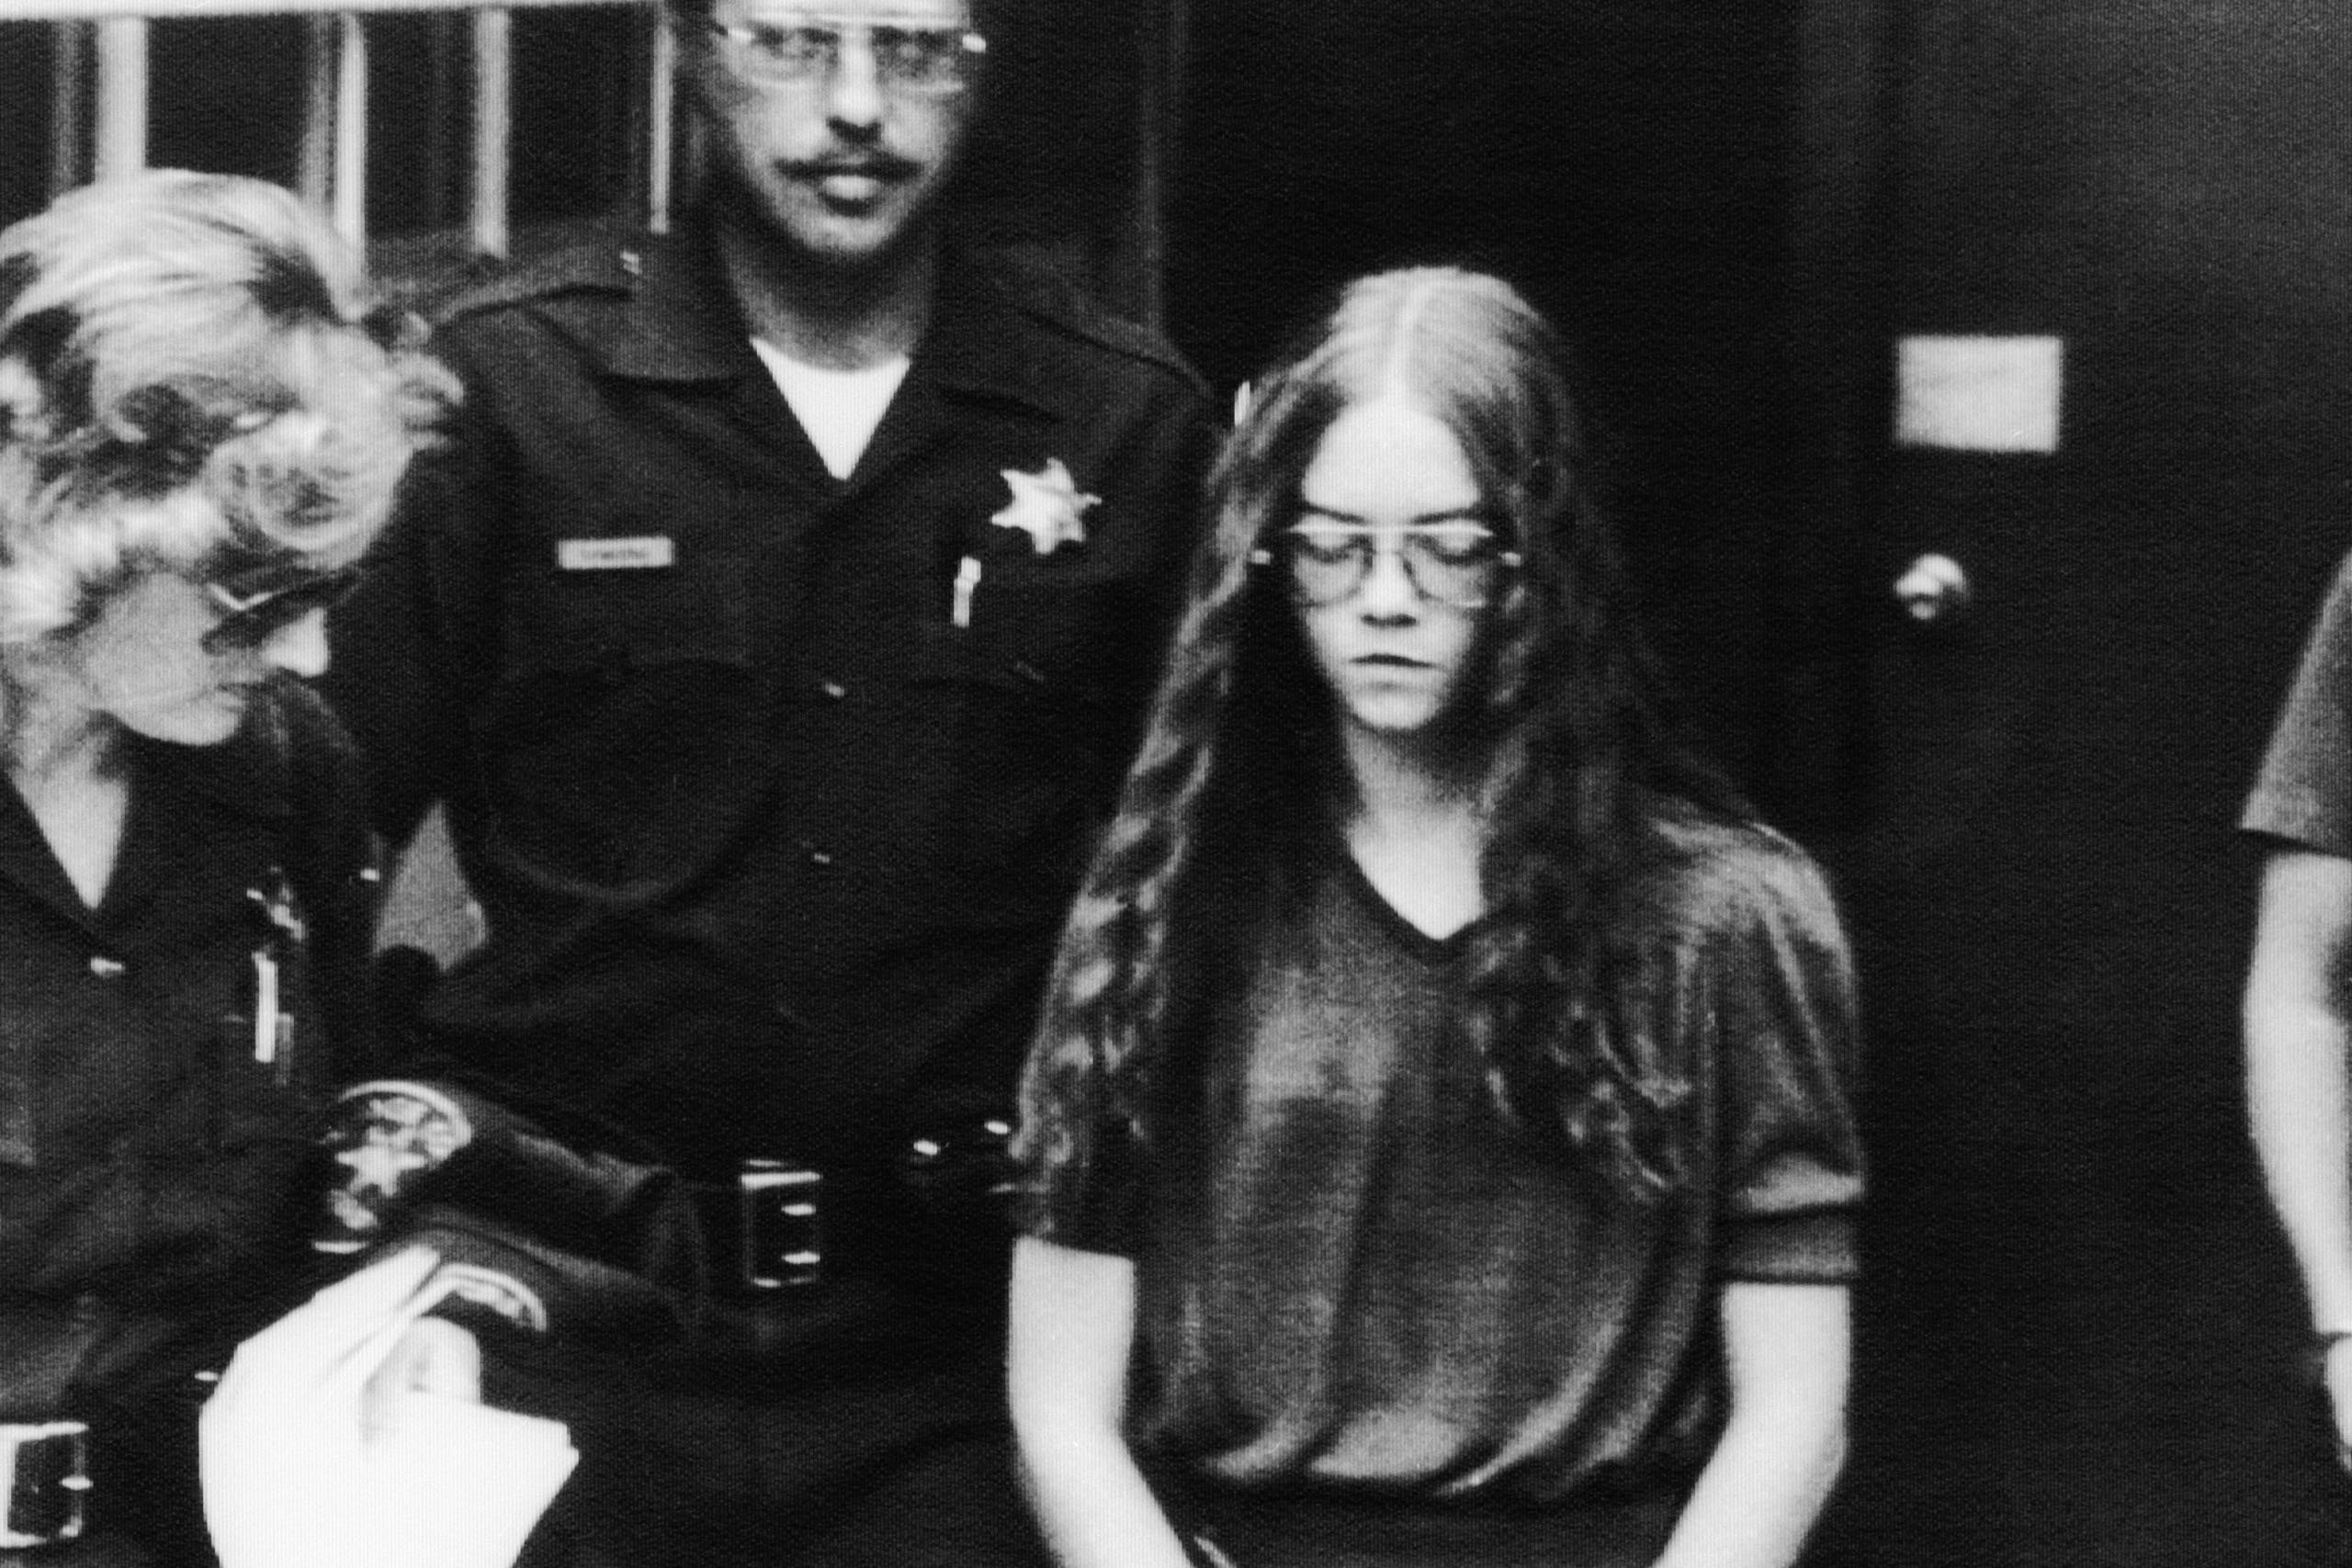 01 Oct 1979, Santa Ana, California, USA --- Brenda Spencer chained at her hands and ankles leaves the courthouse, escorted by sheriff?s deputies. Spencer pleaded guilty to two counts of first degree murder in the school yard sniper attack in San Diego that killed two men, the principal and the custodian of the elementary school, and wounded eight children and a policeman. --- Image by © Bettmann/CORBIS